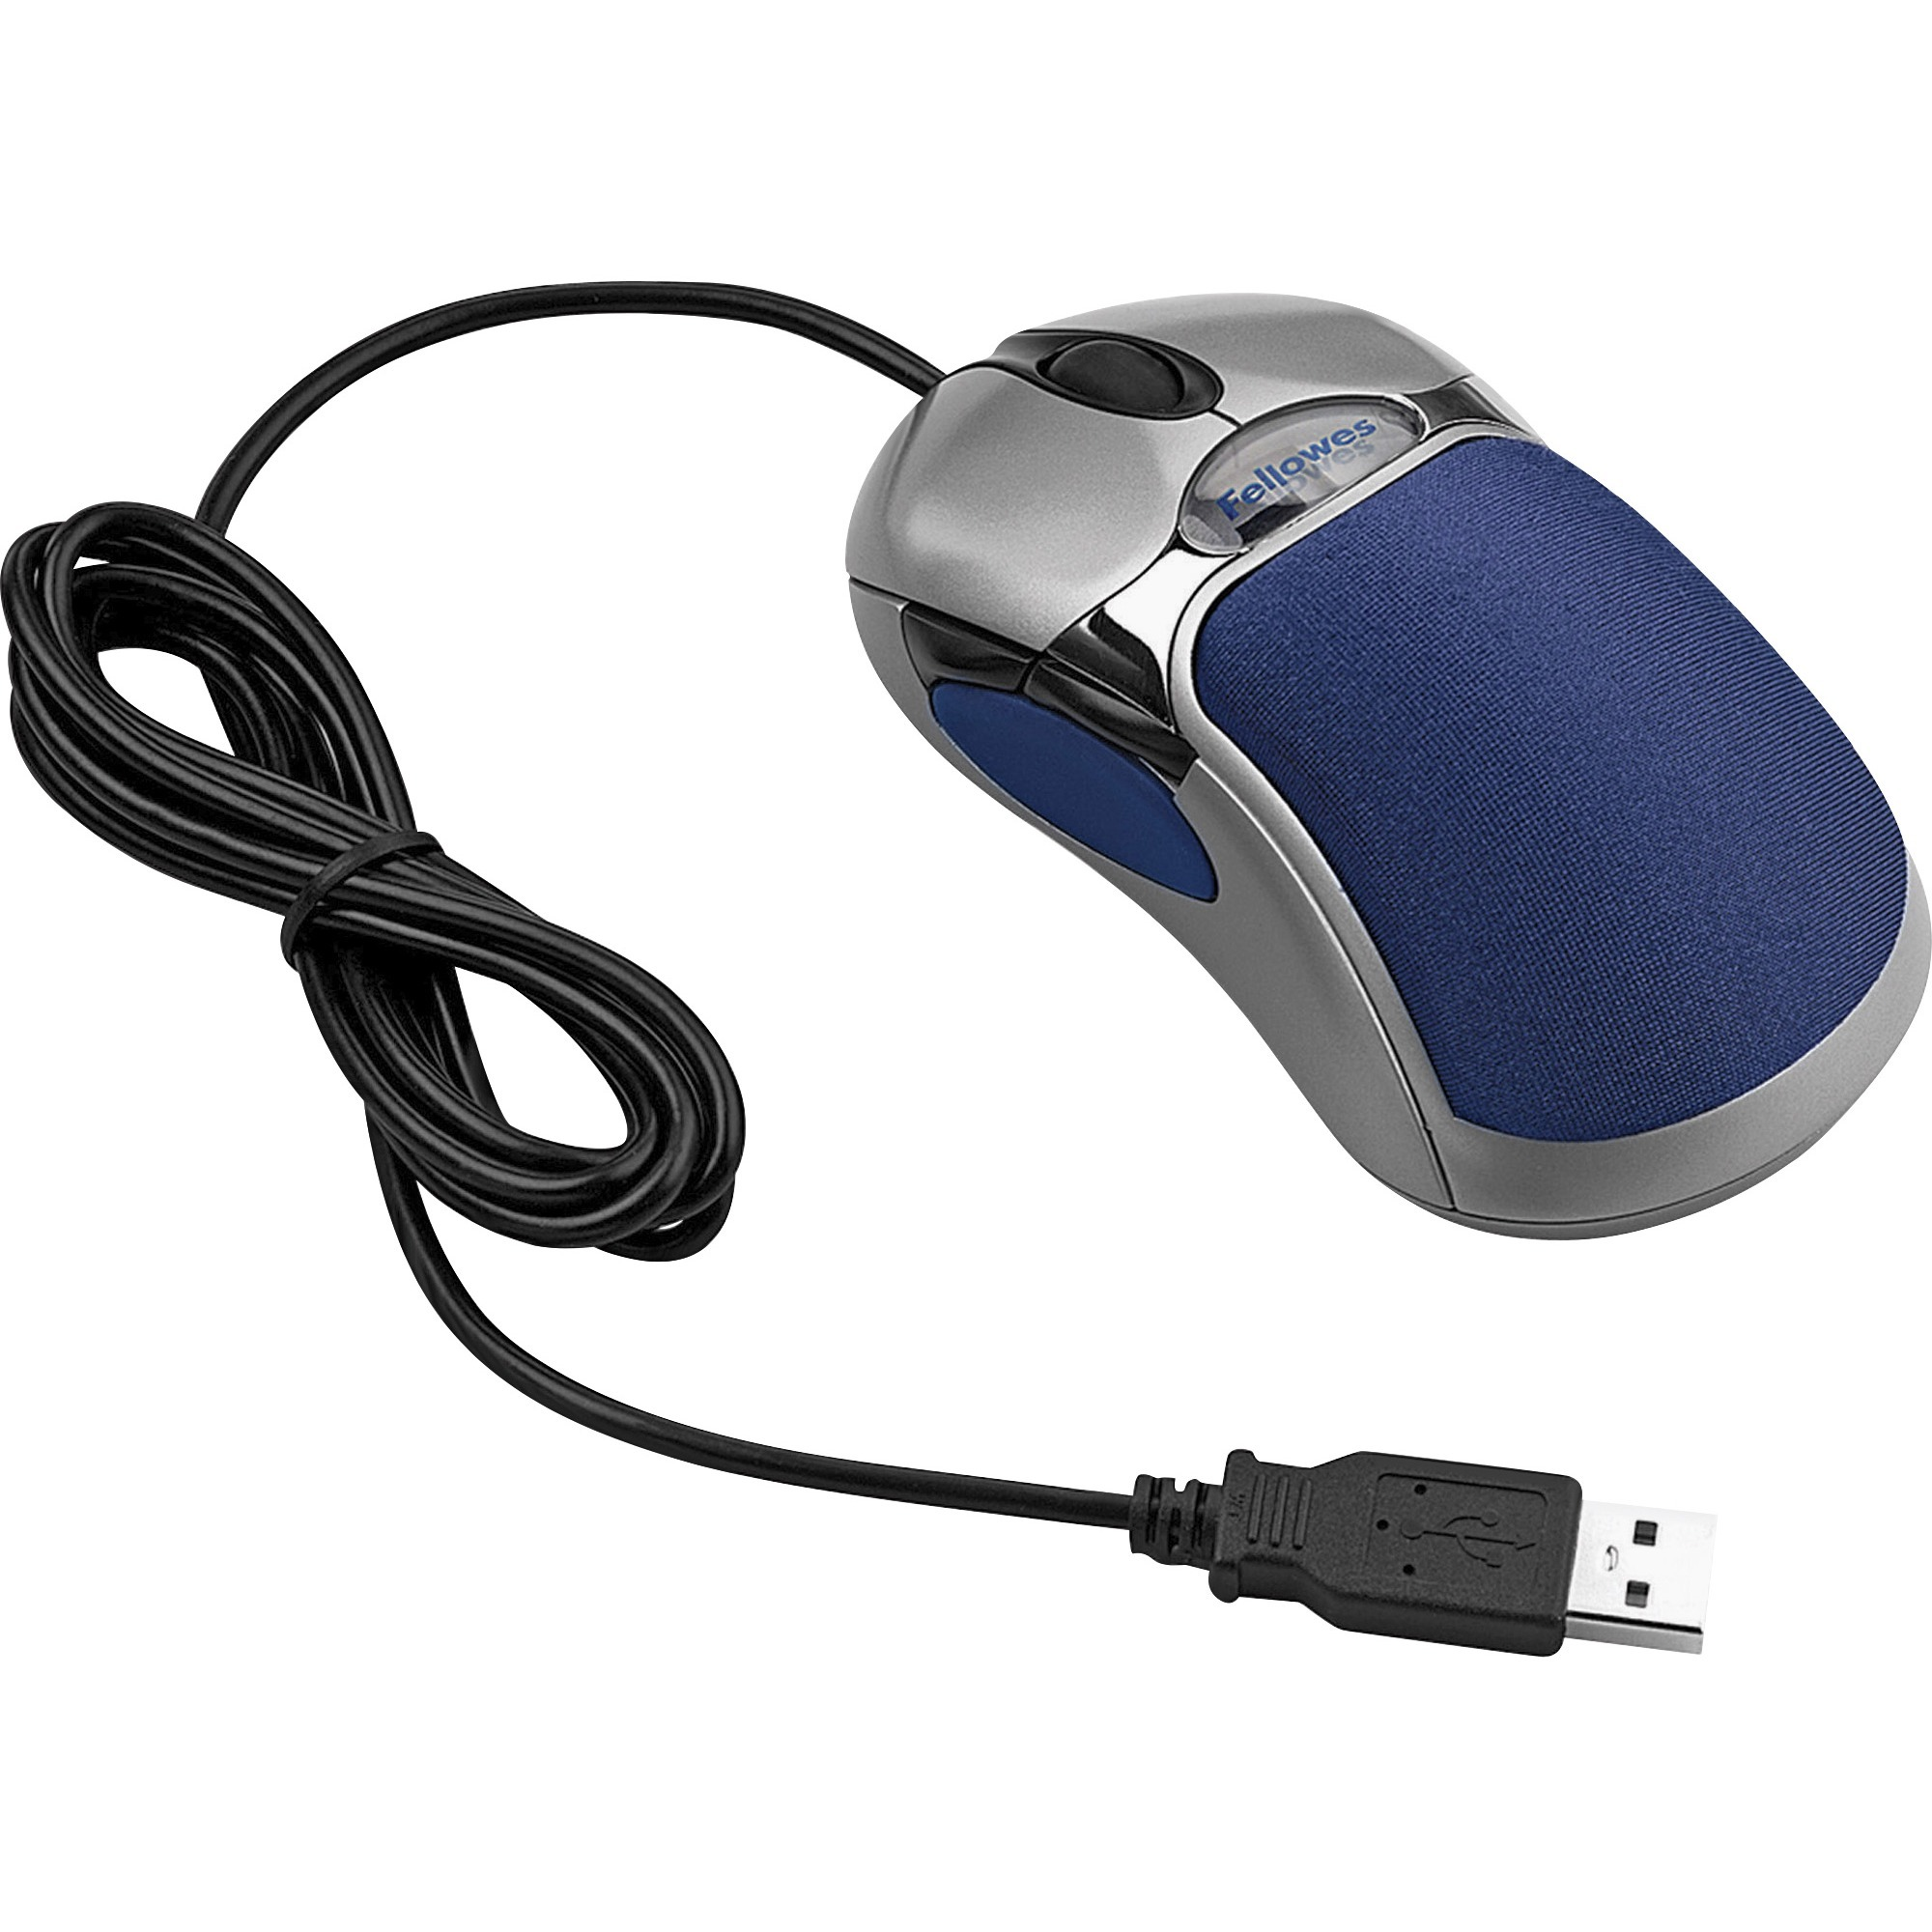 Fellowes 5-Button Optical Mouse with HD Precision, Silver, Blue